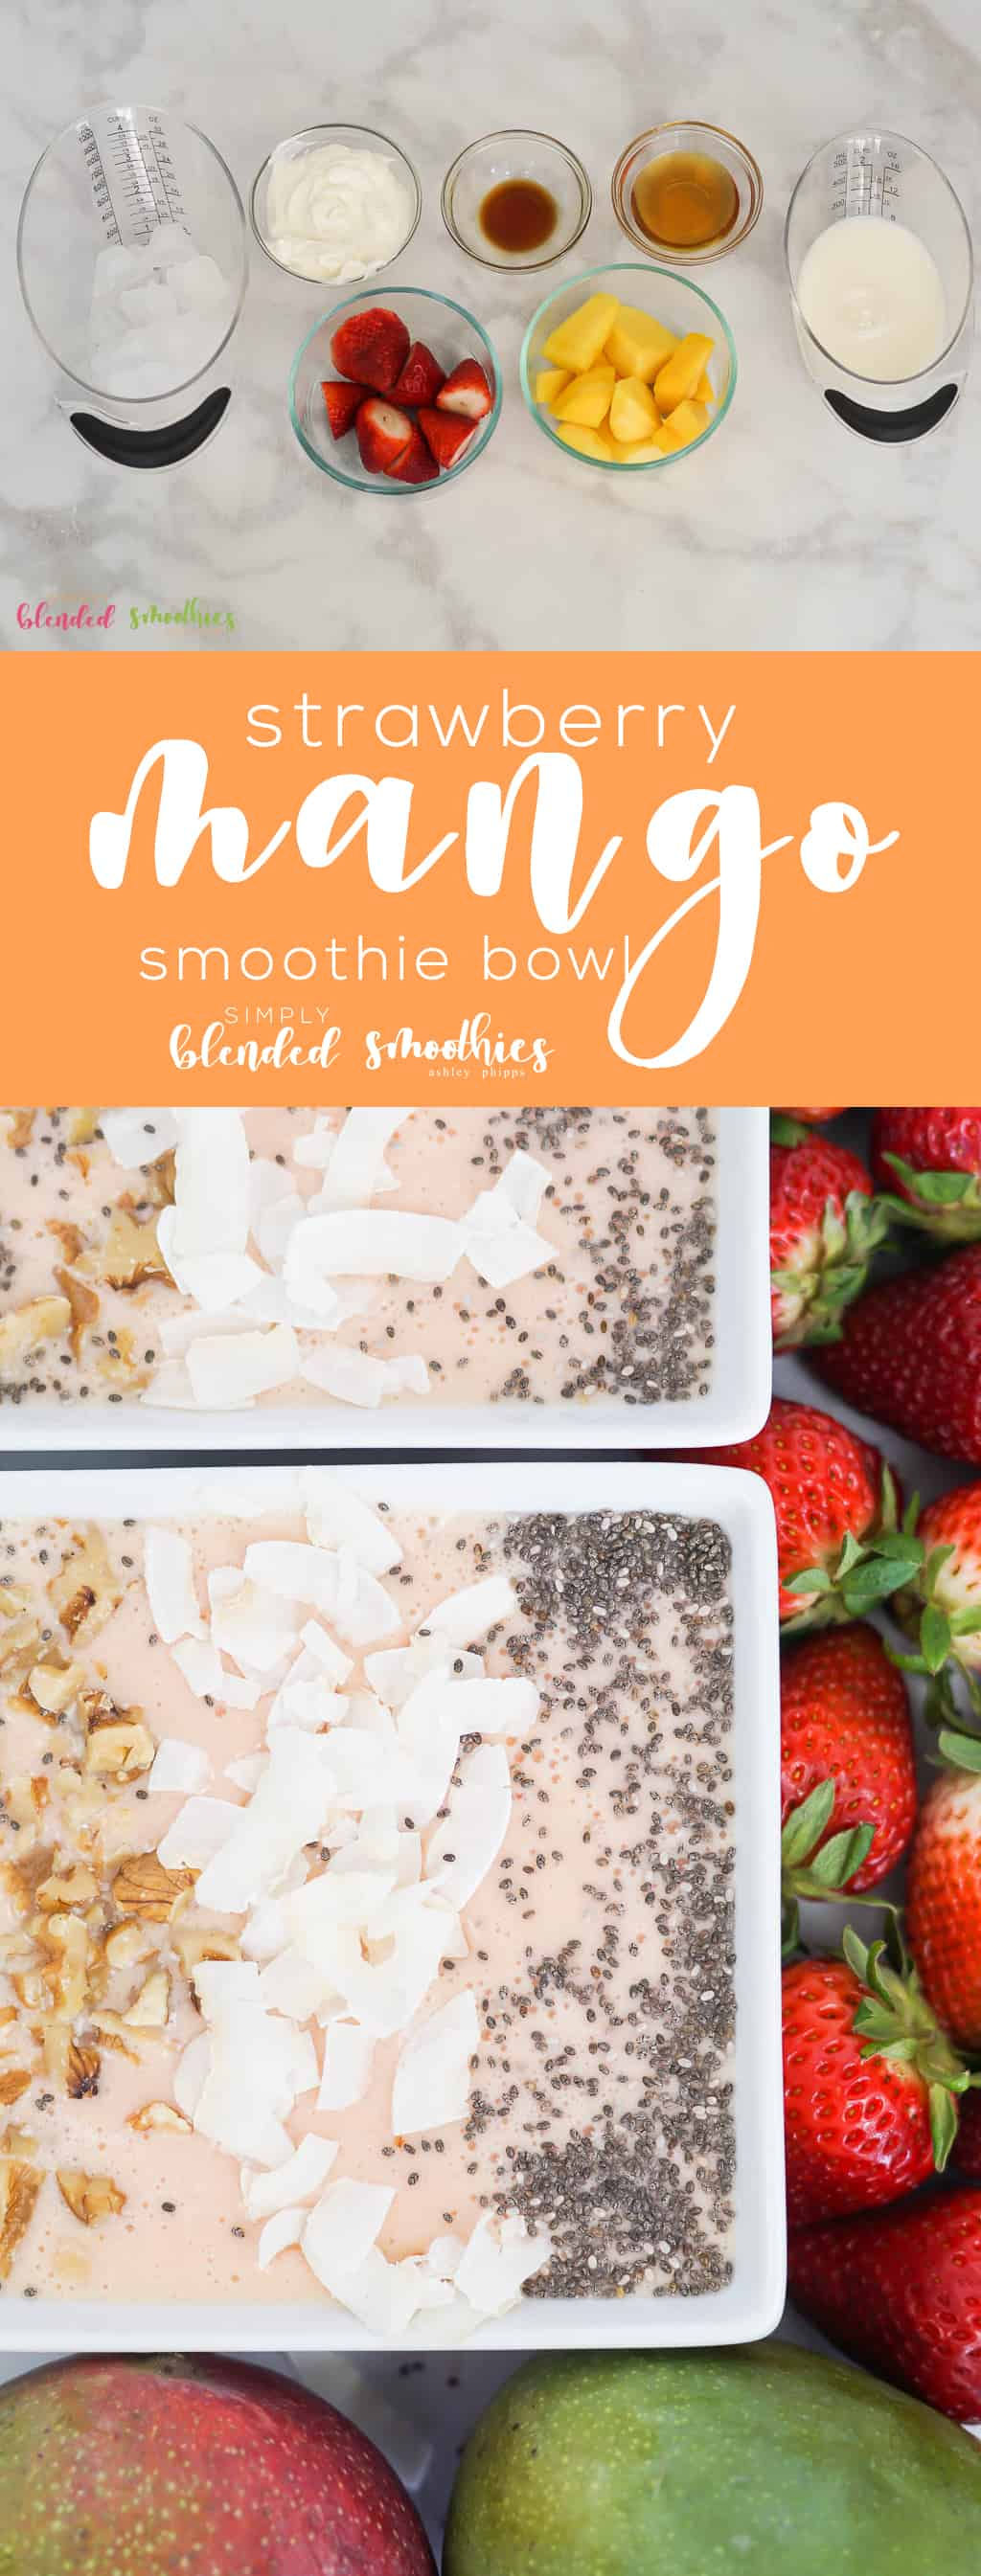 Strawberry Mango Smoothie Bowl - a delicious and tropical smoothie